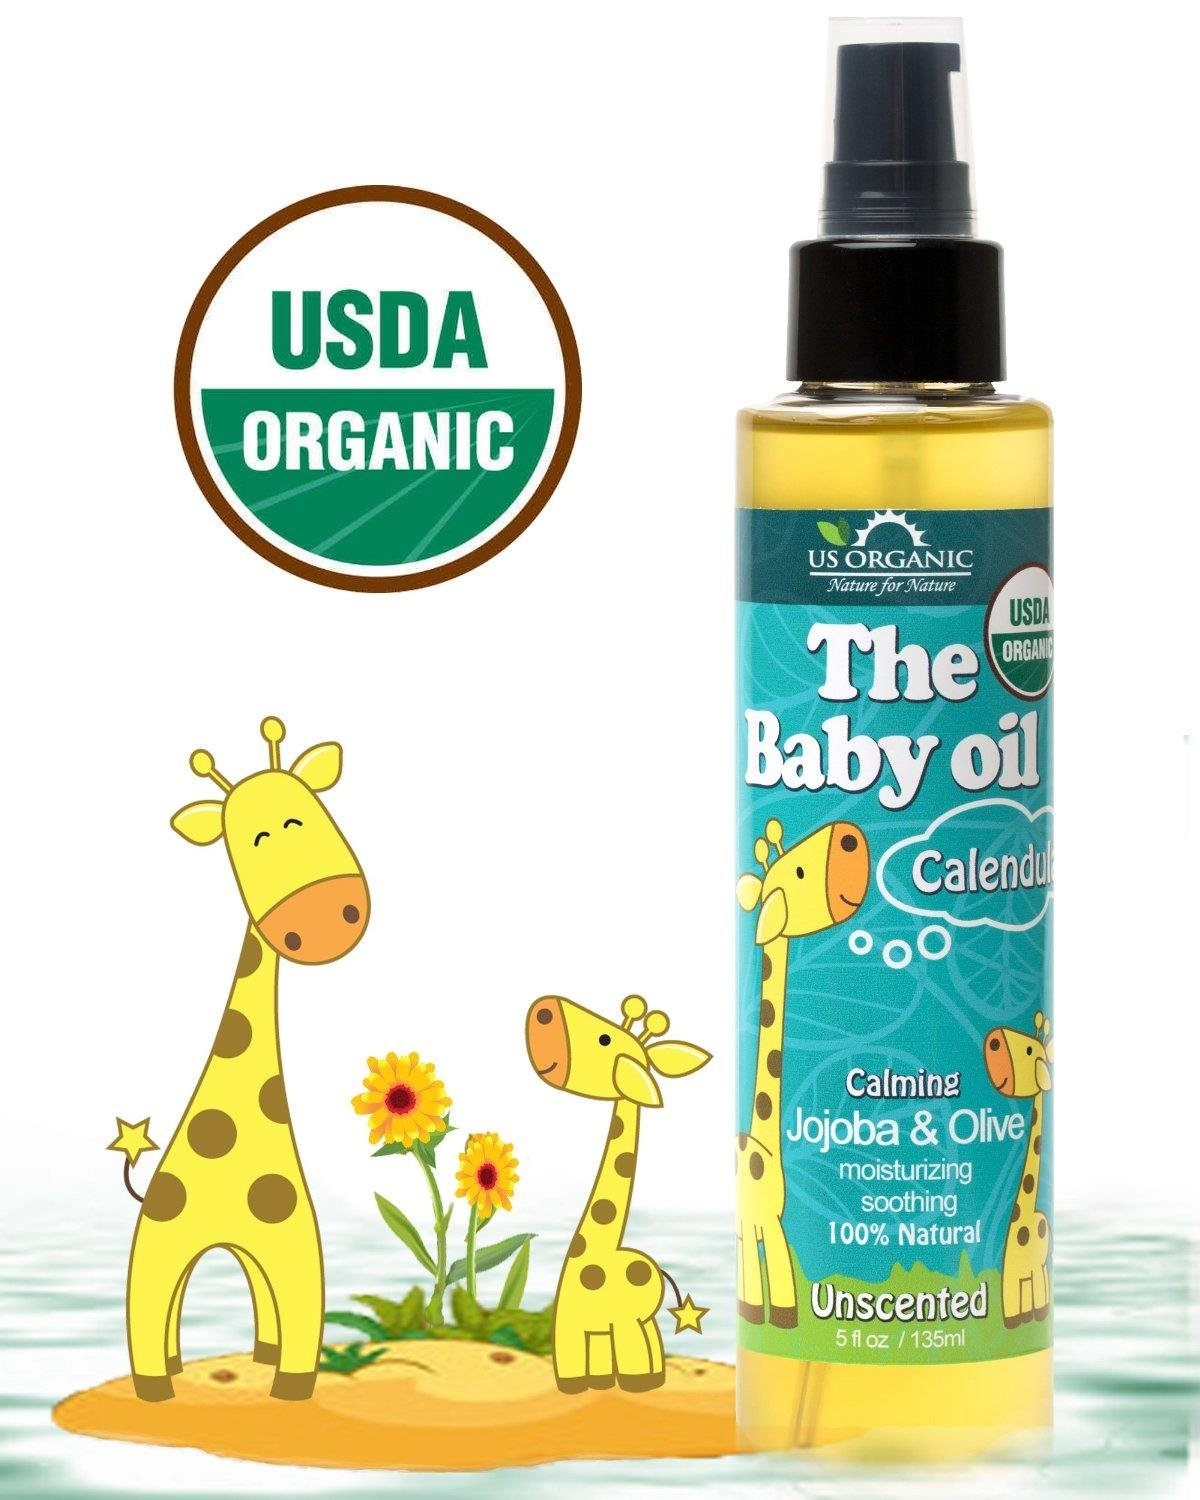 US Organic Baby Oil with Calendula, Uncsented - Jojoba and Olive Oil with Vitamin E, USDA Certified Organic, 5 Ounce by US Organic   B00NUTETI2